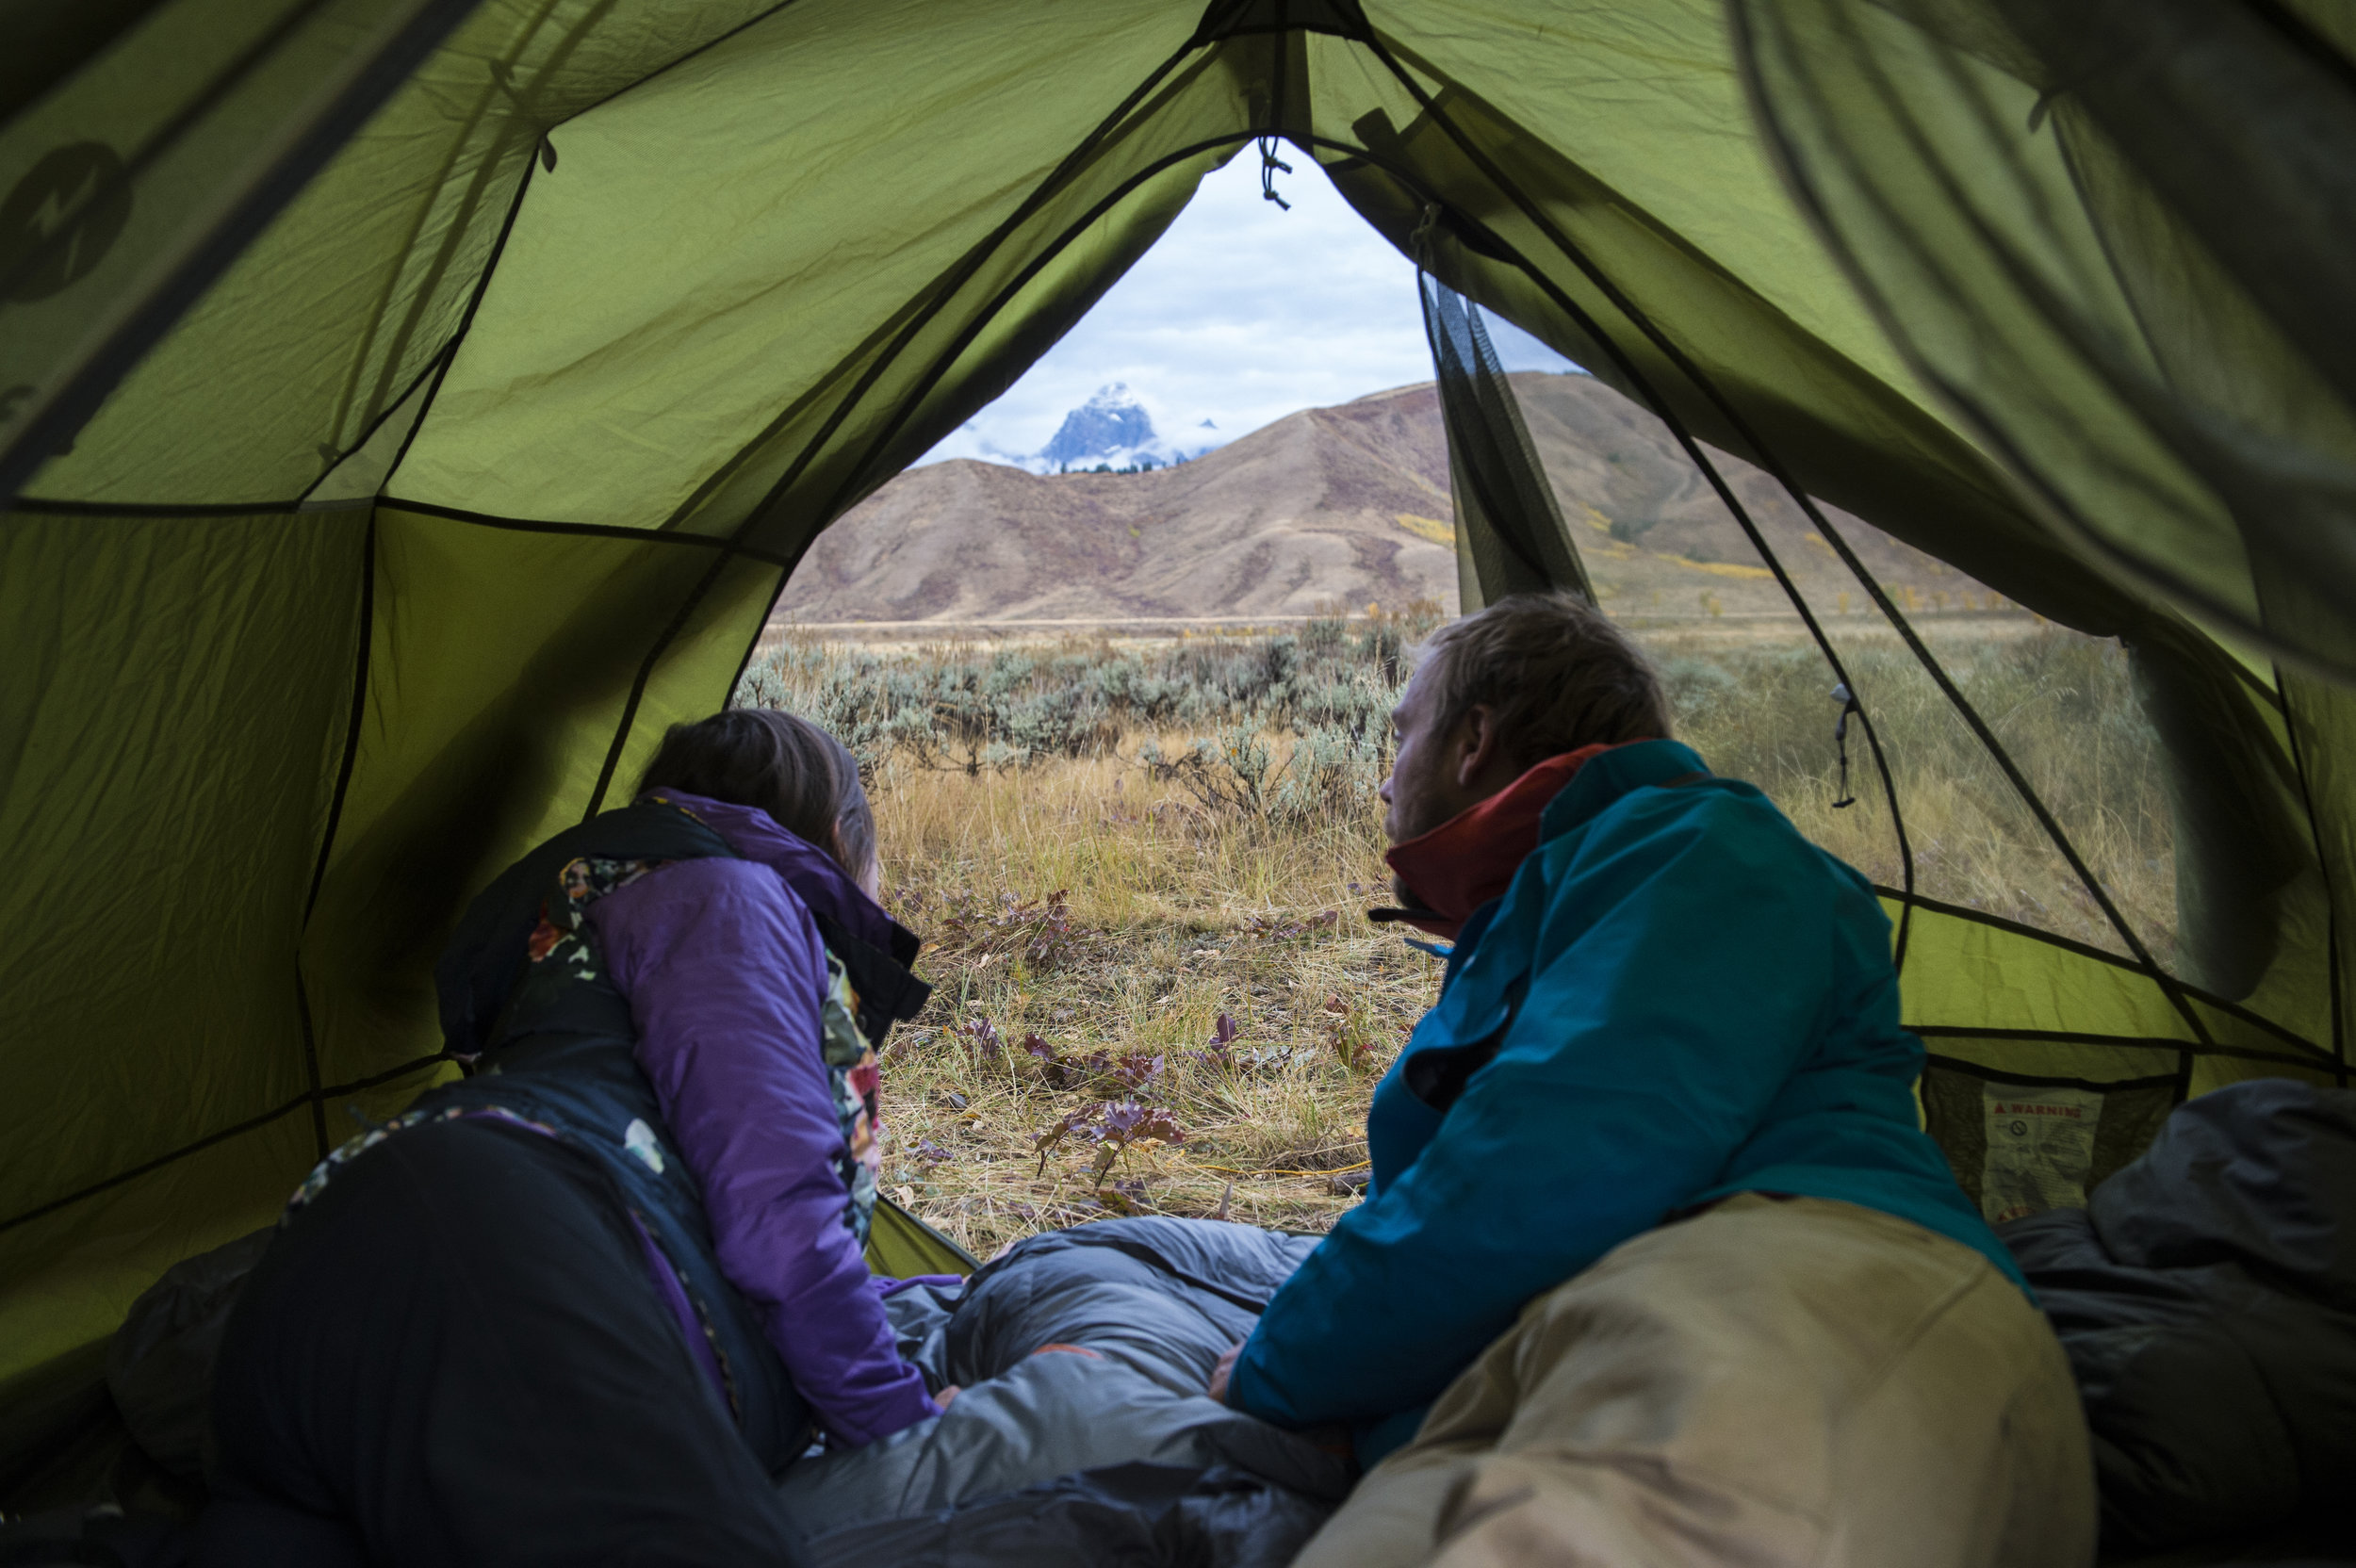 Waking in a tent in the shadow of the Tetons in Jackson, Wyoming